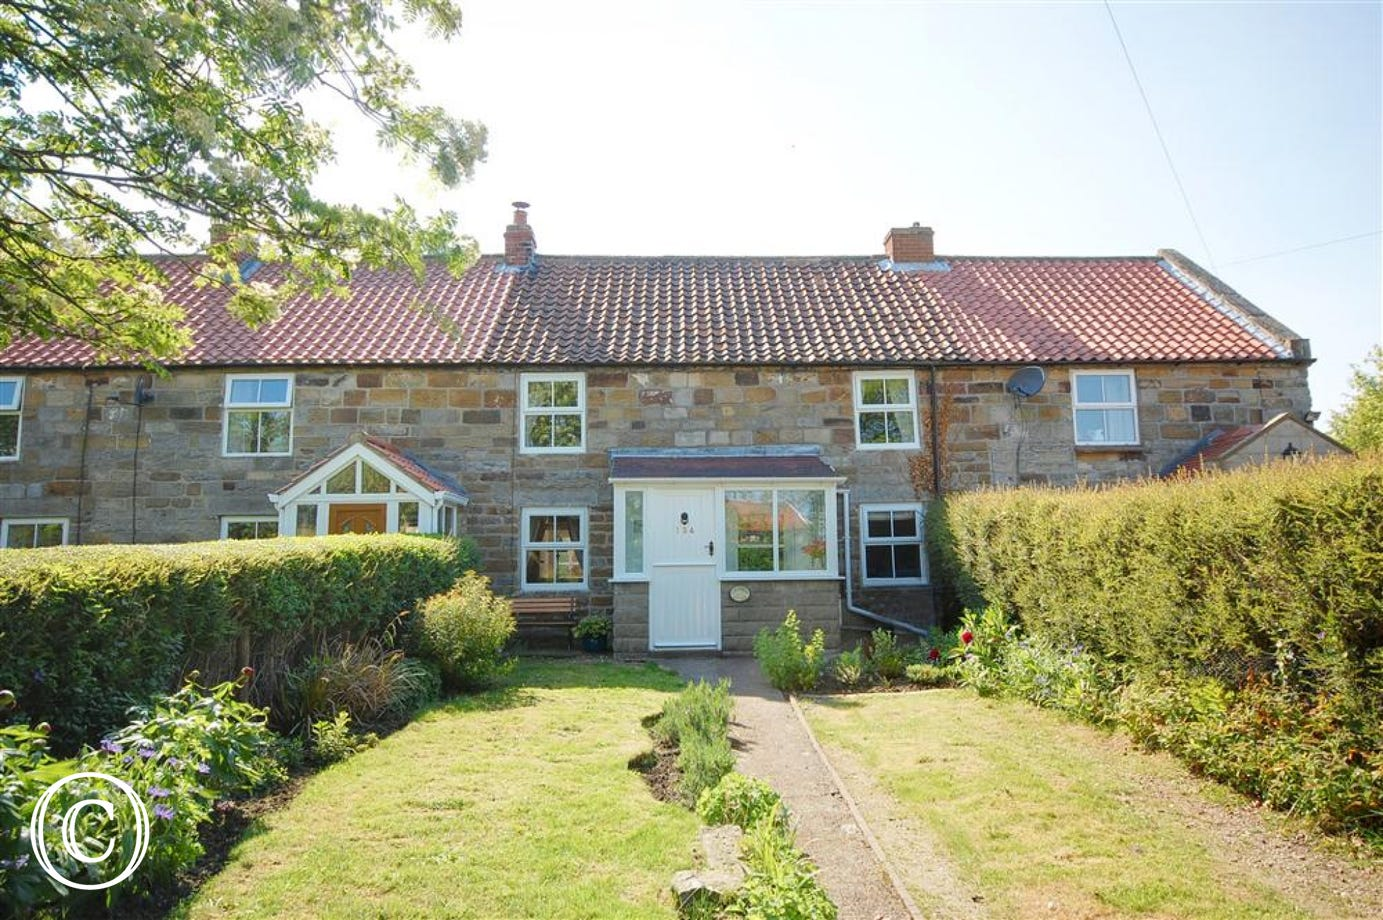 Lavender Cottage is a stunning, tradtional stone built country cottage with enclosed garden.